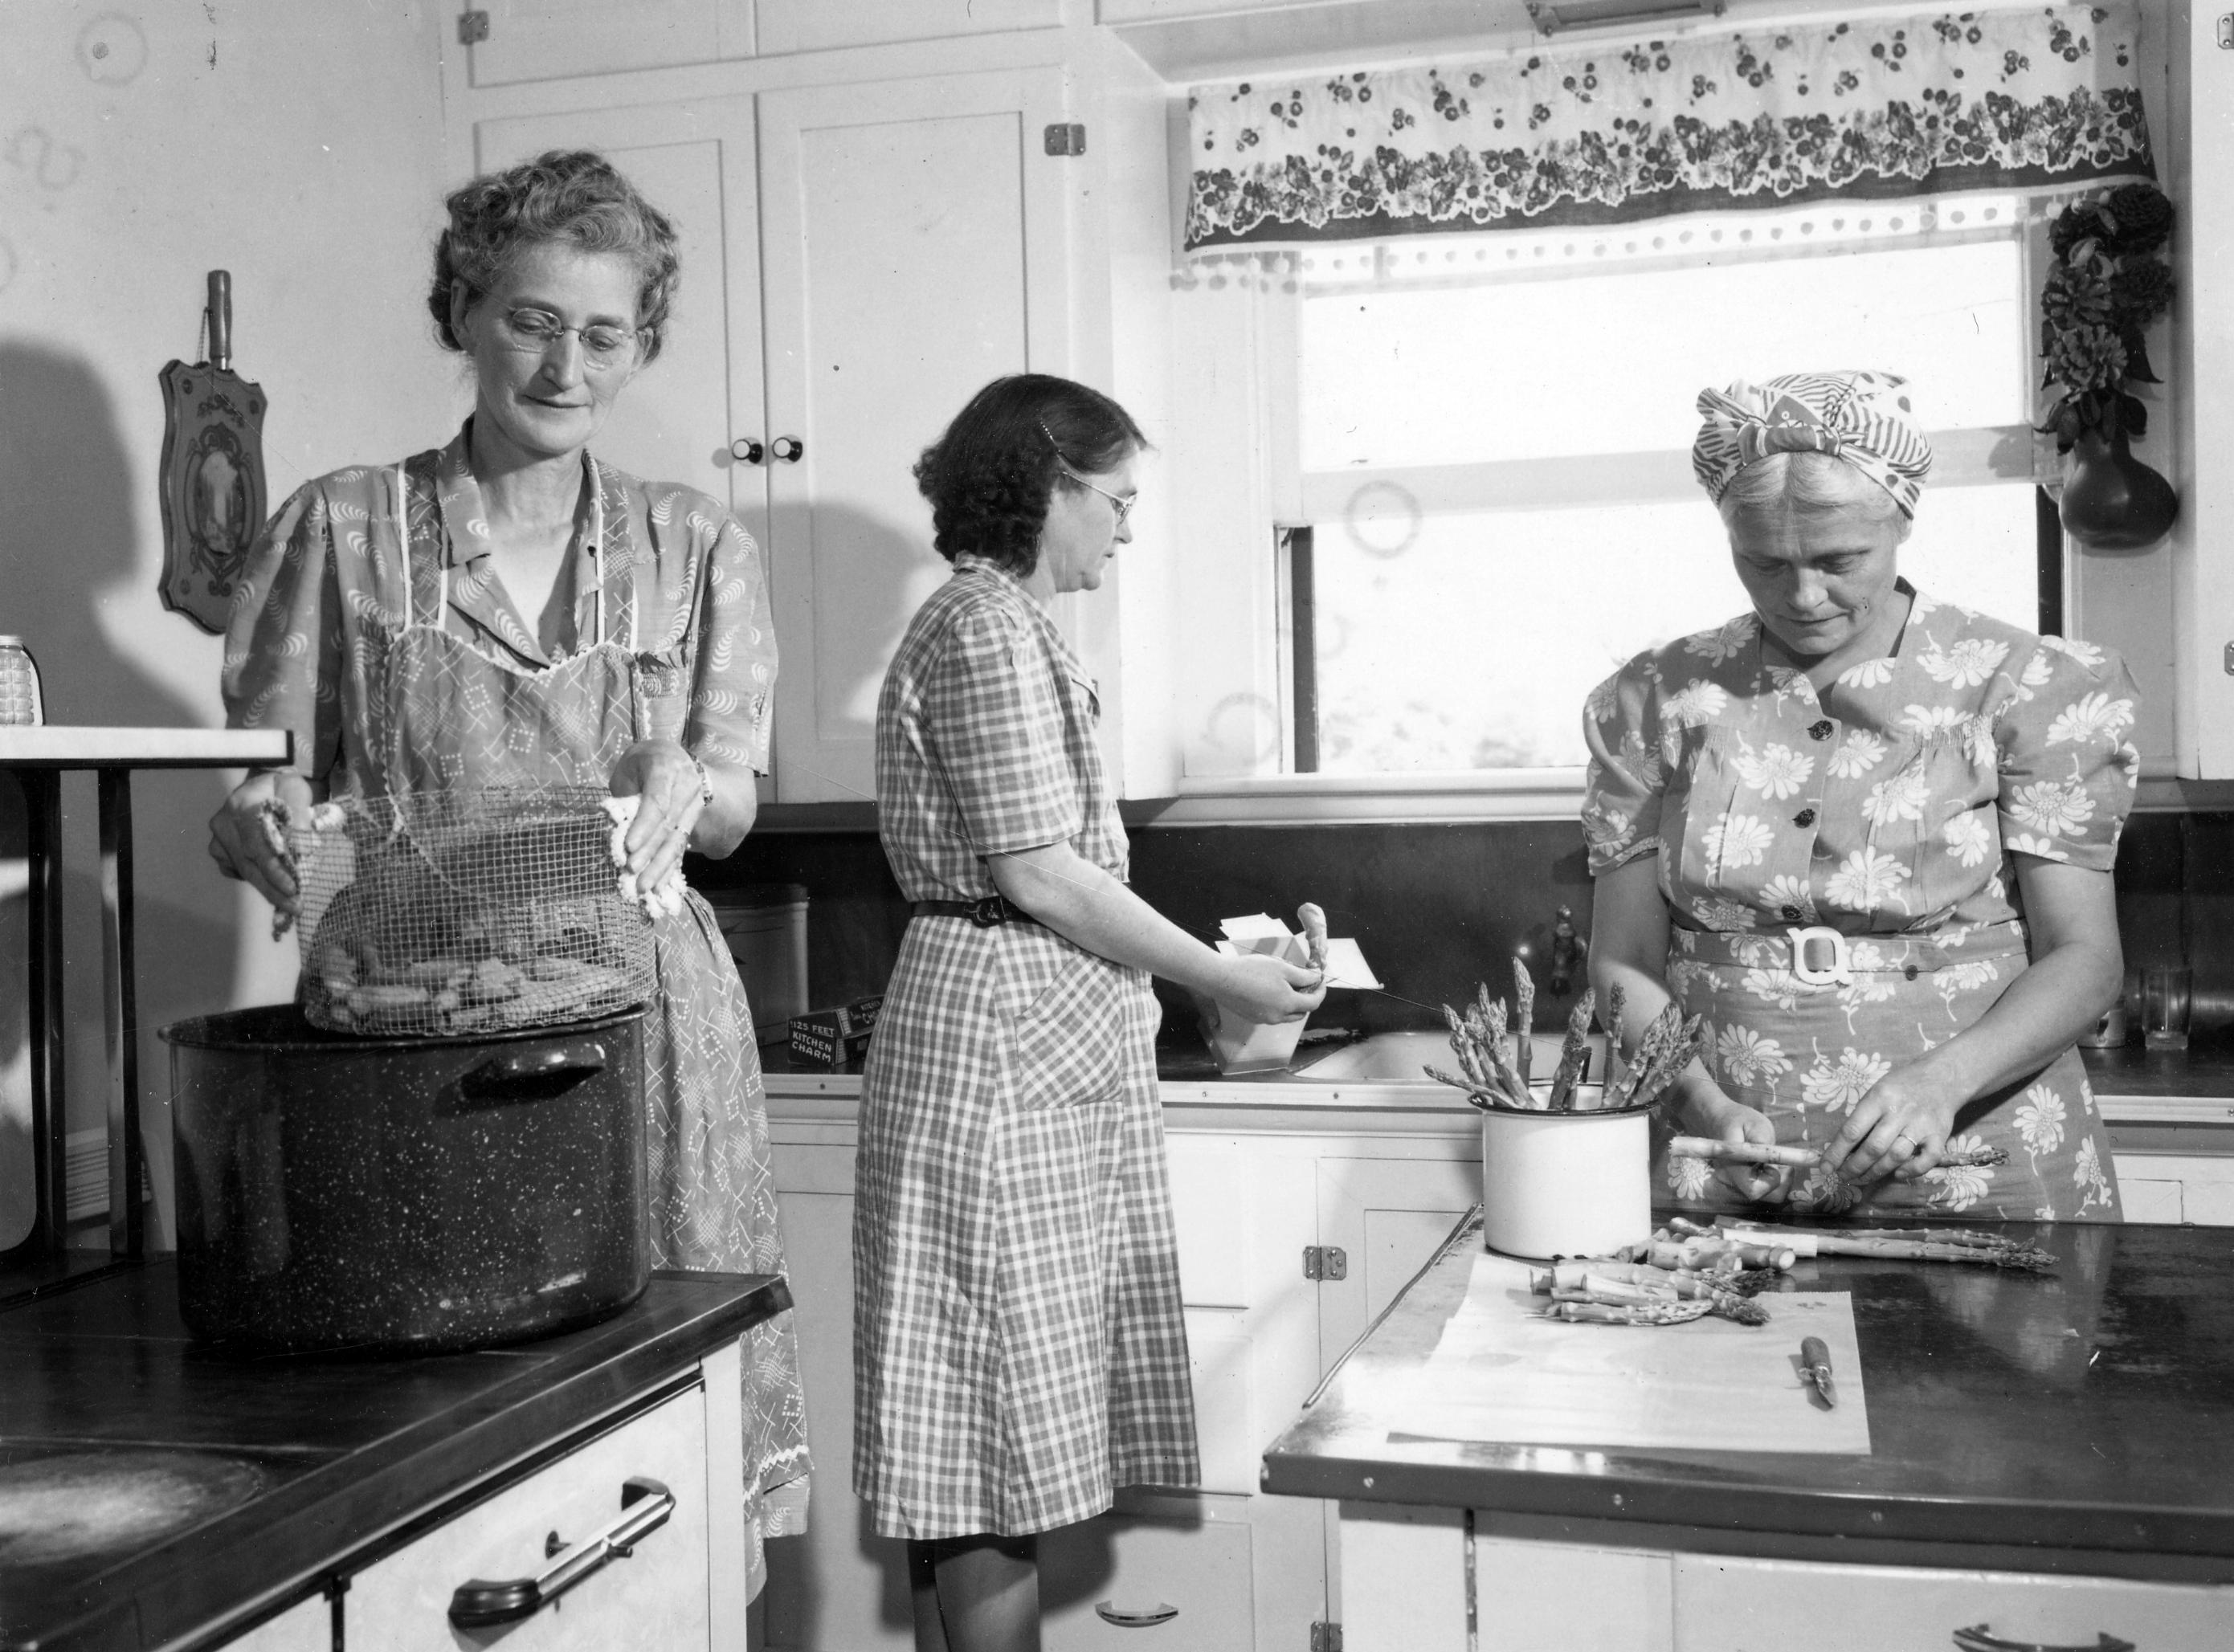 FileWomen In Kitchen Preparing Food Circa 1945